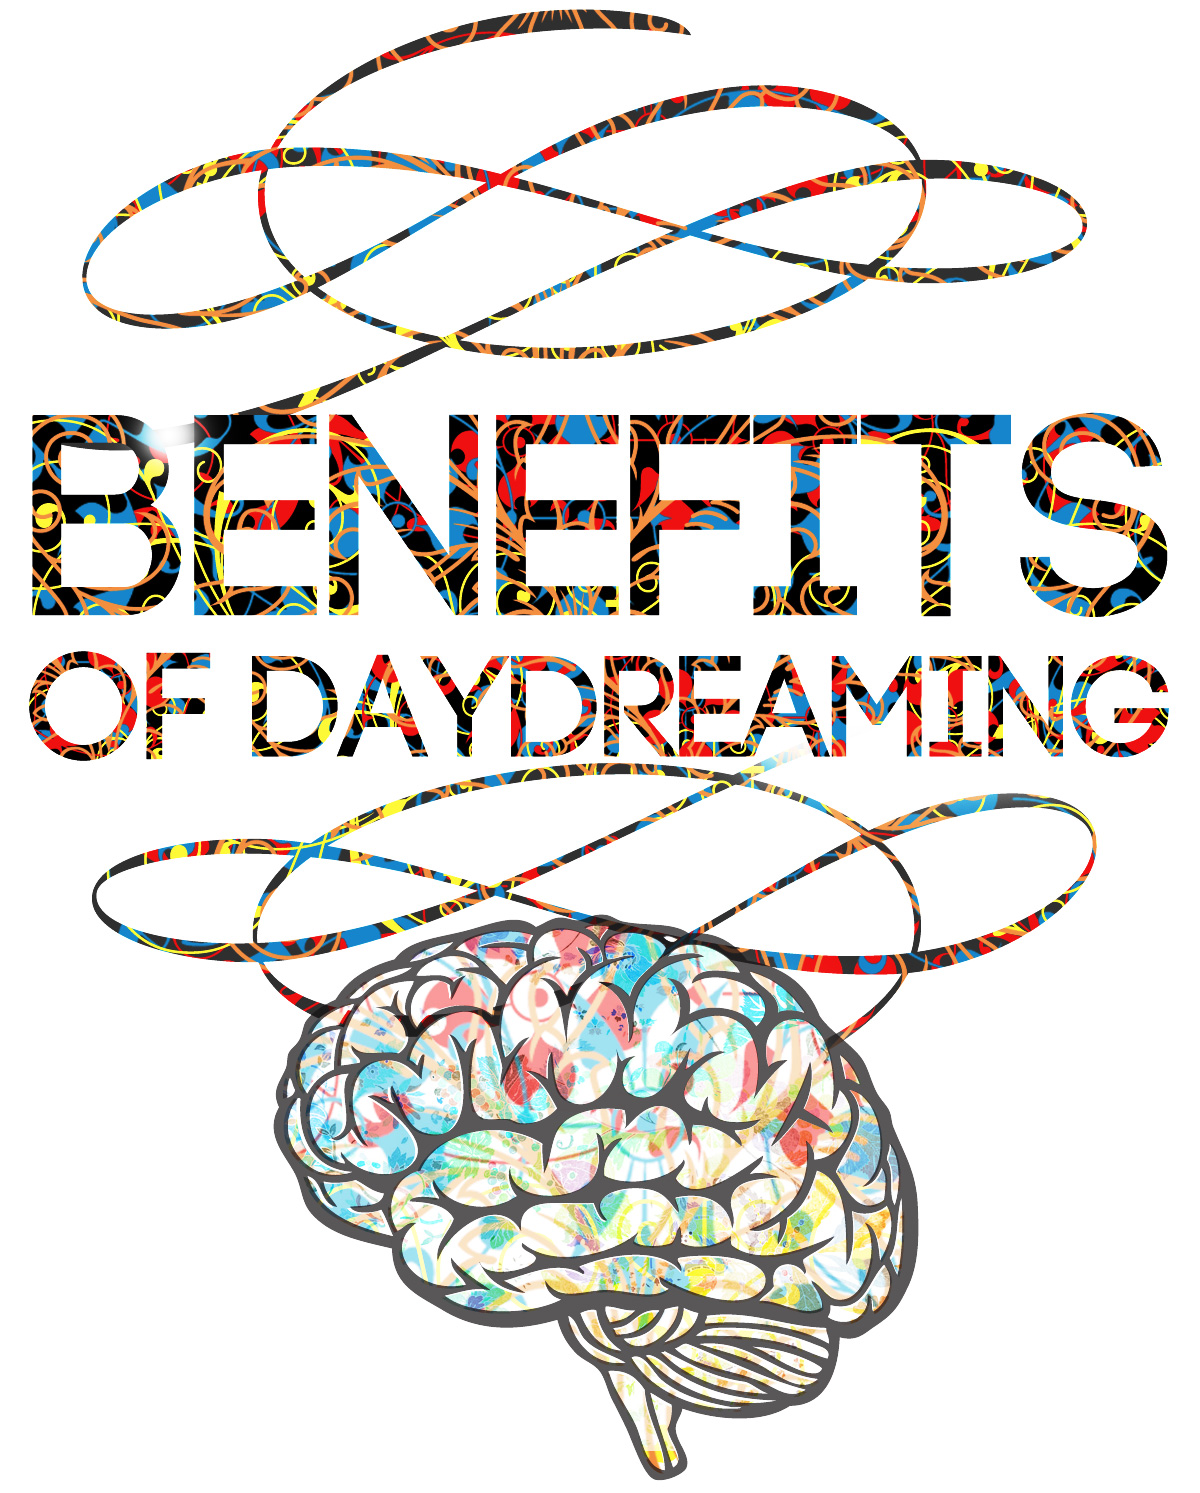 benefitsofdaydreaming_FA_02